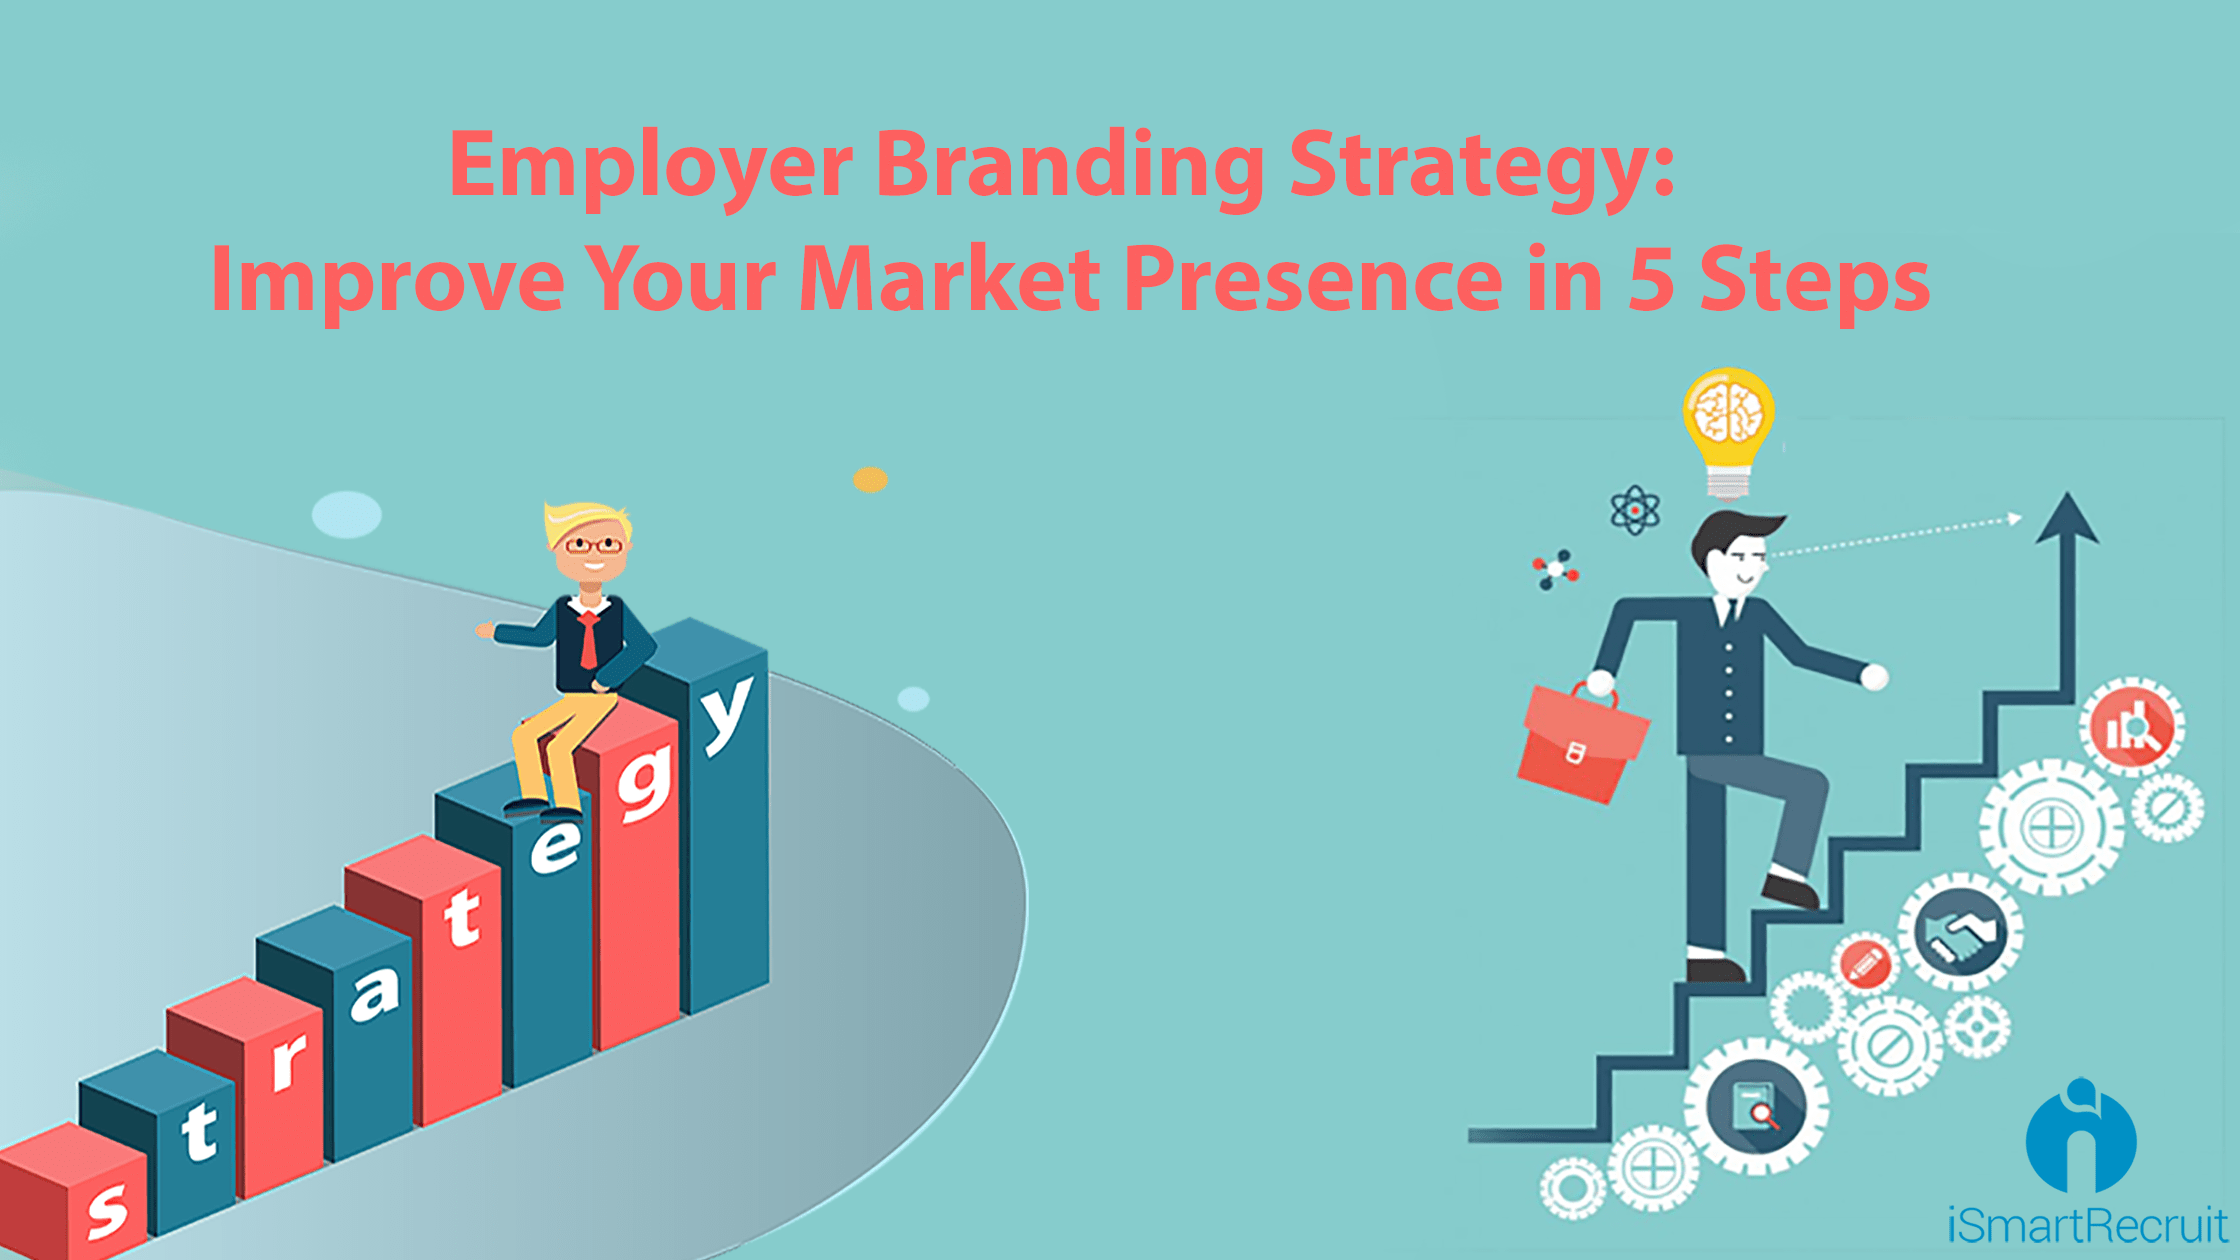 Employer Branding Strategy: Improve Your Market Presence in 5 Steps